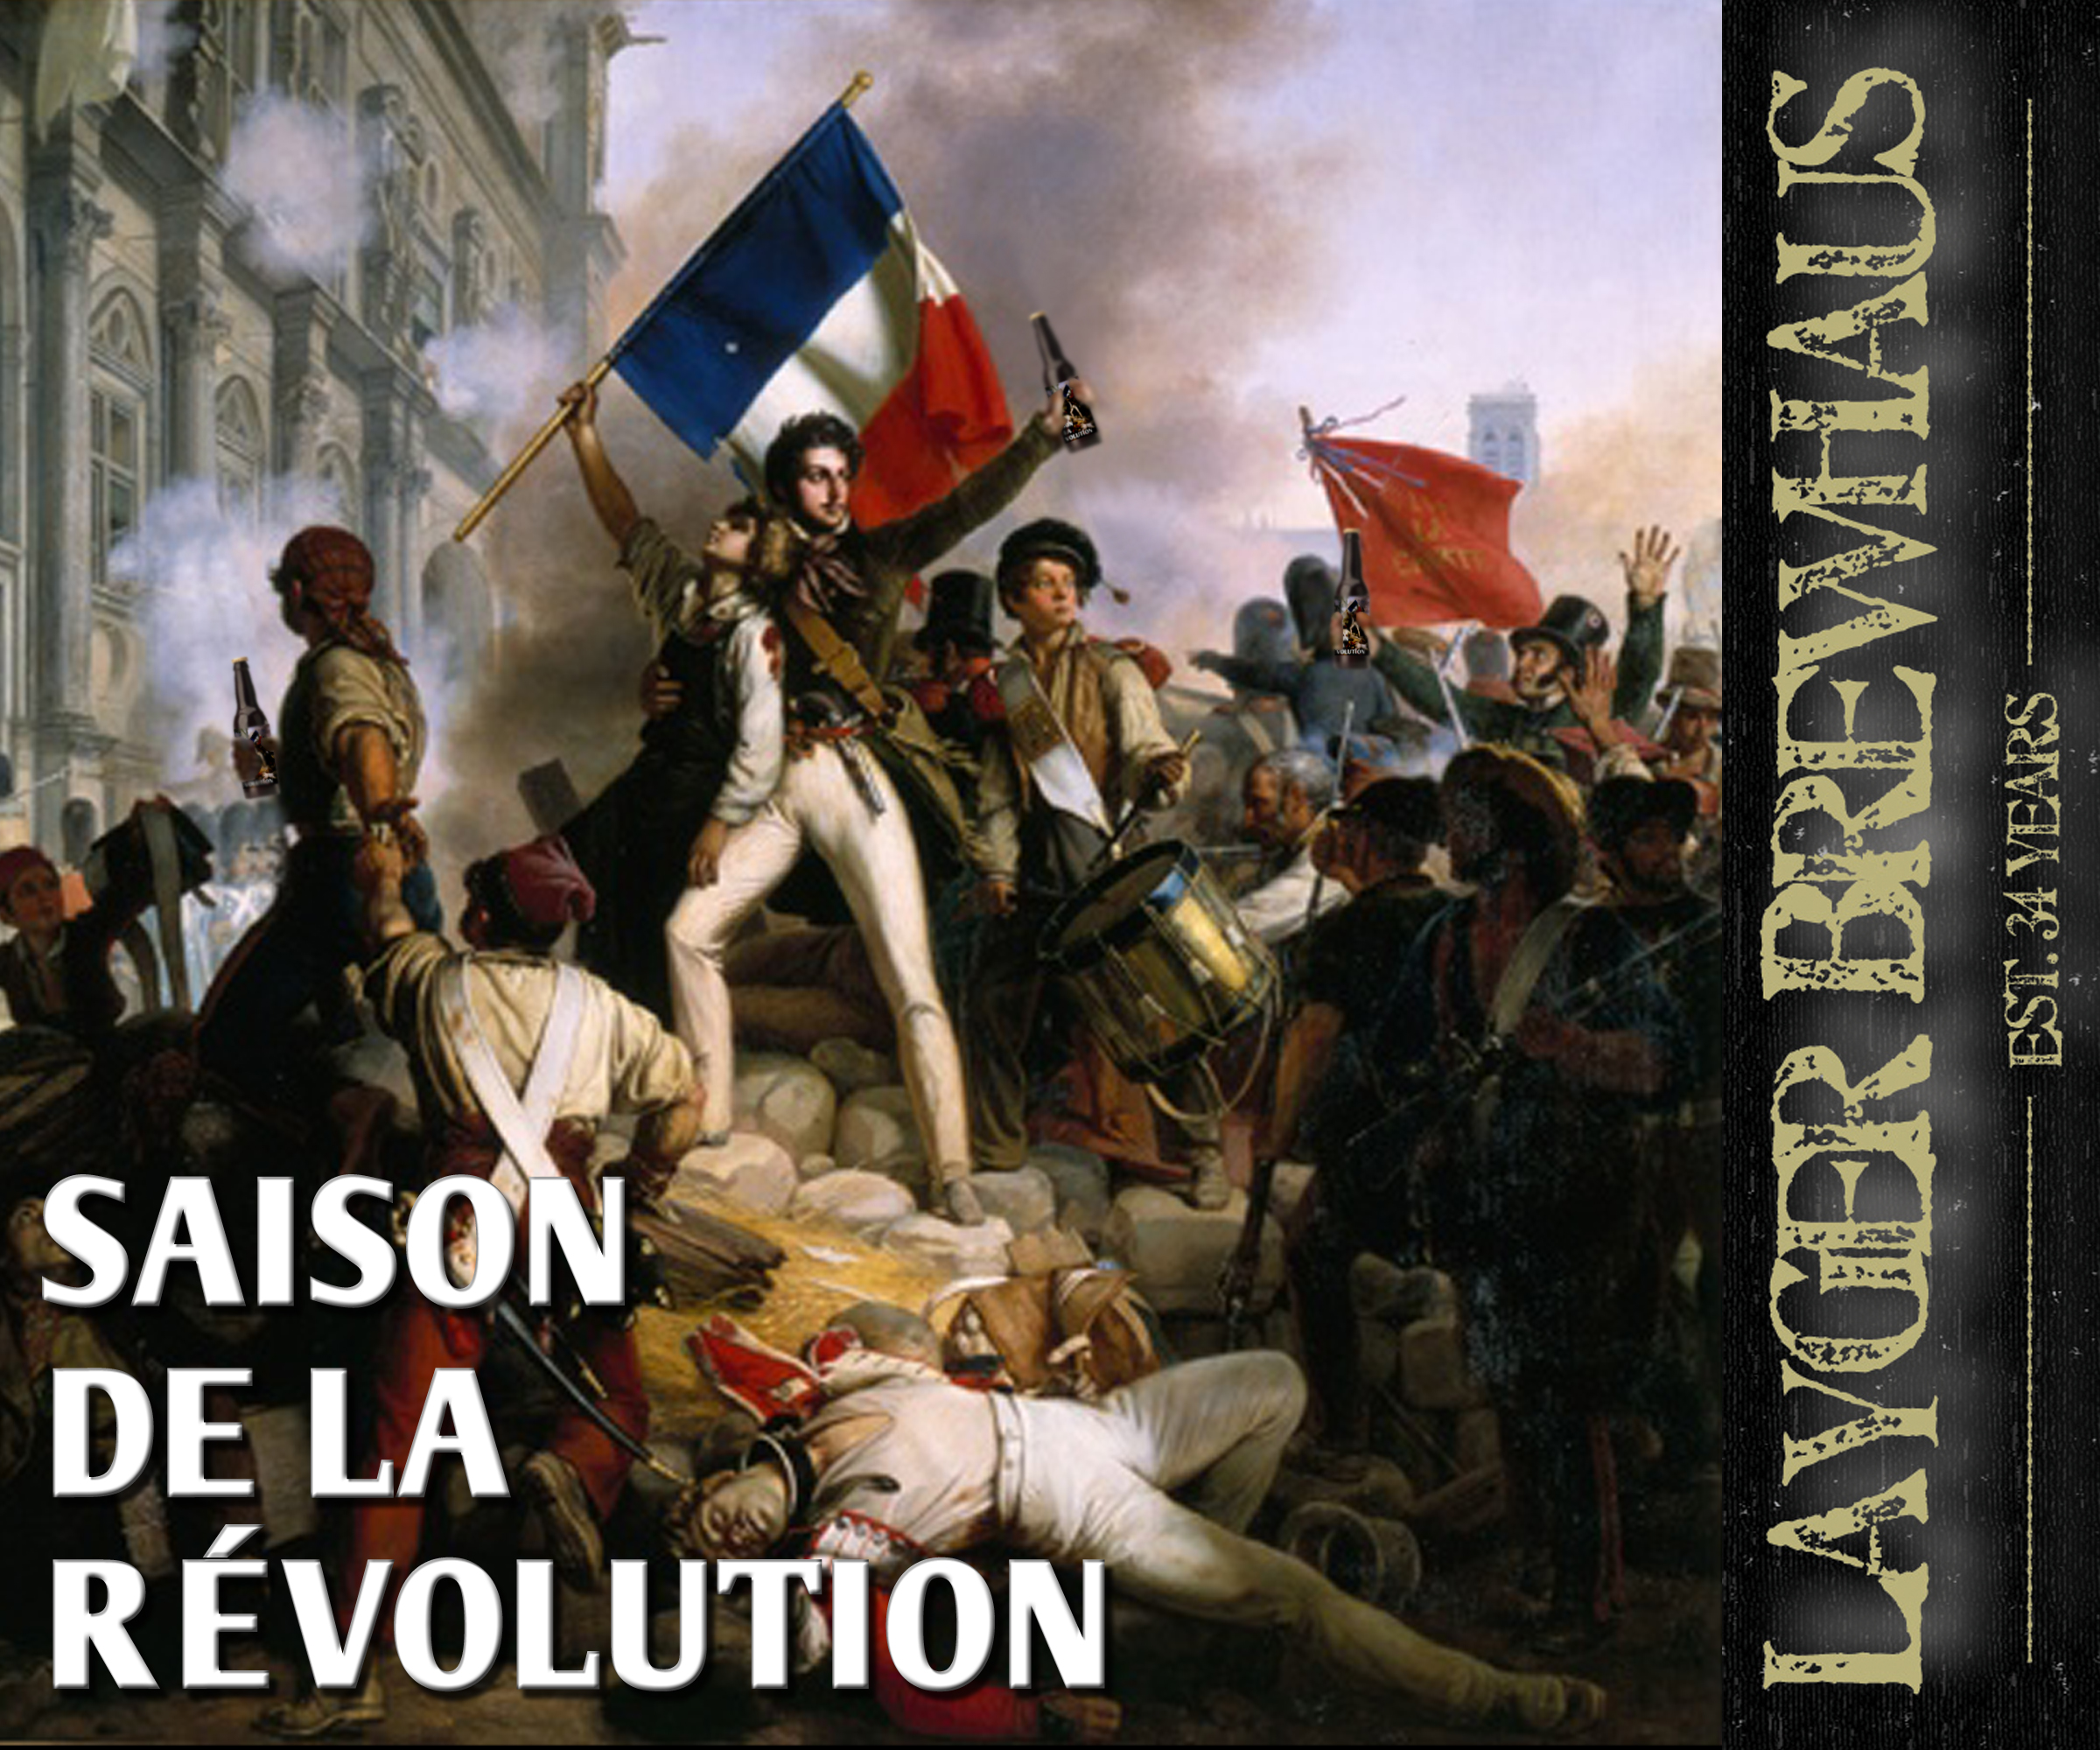 french revolution ultimately a failure After the revolution began, no european kings, nobles, or other privileged groups could ever again take their powers for granted or ignore the ideals of liberty and equality - the revolution created the long-lasting foundations for a unified state, a strong central government, and a free society dominated by.